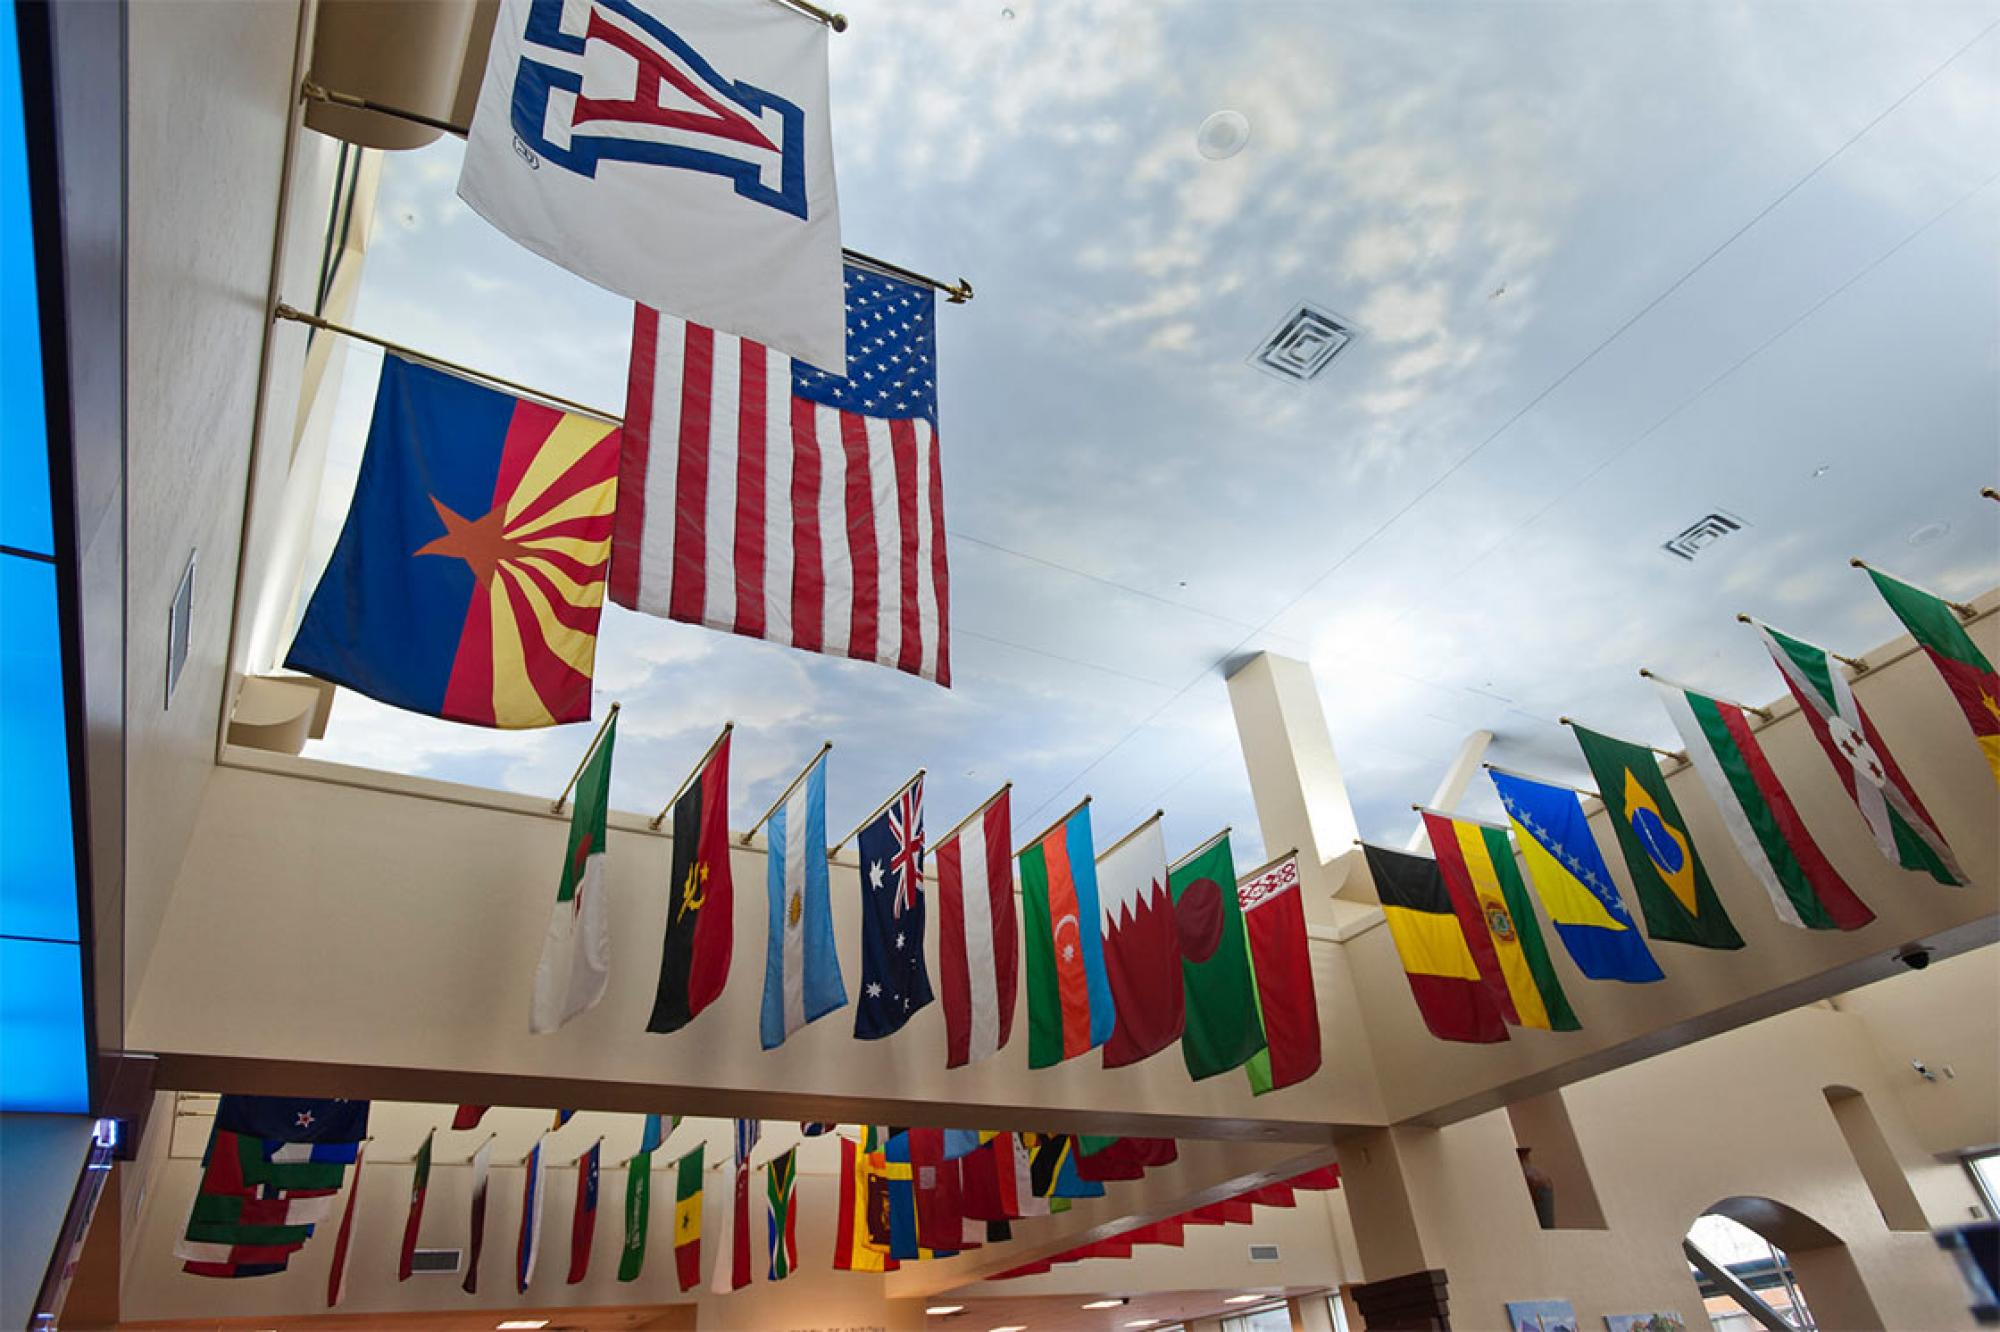 Image of flags